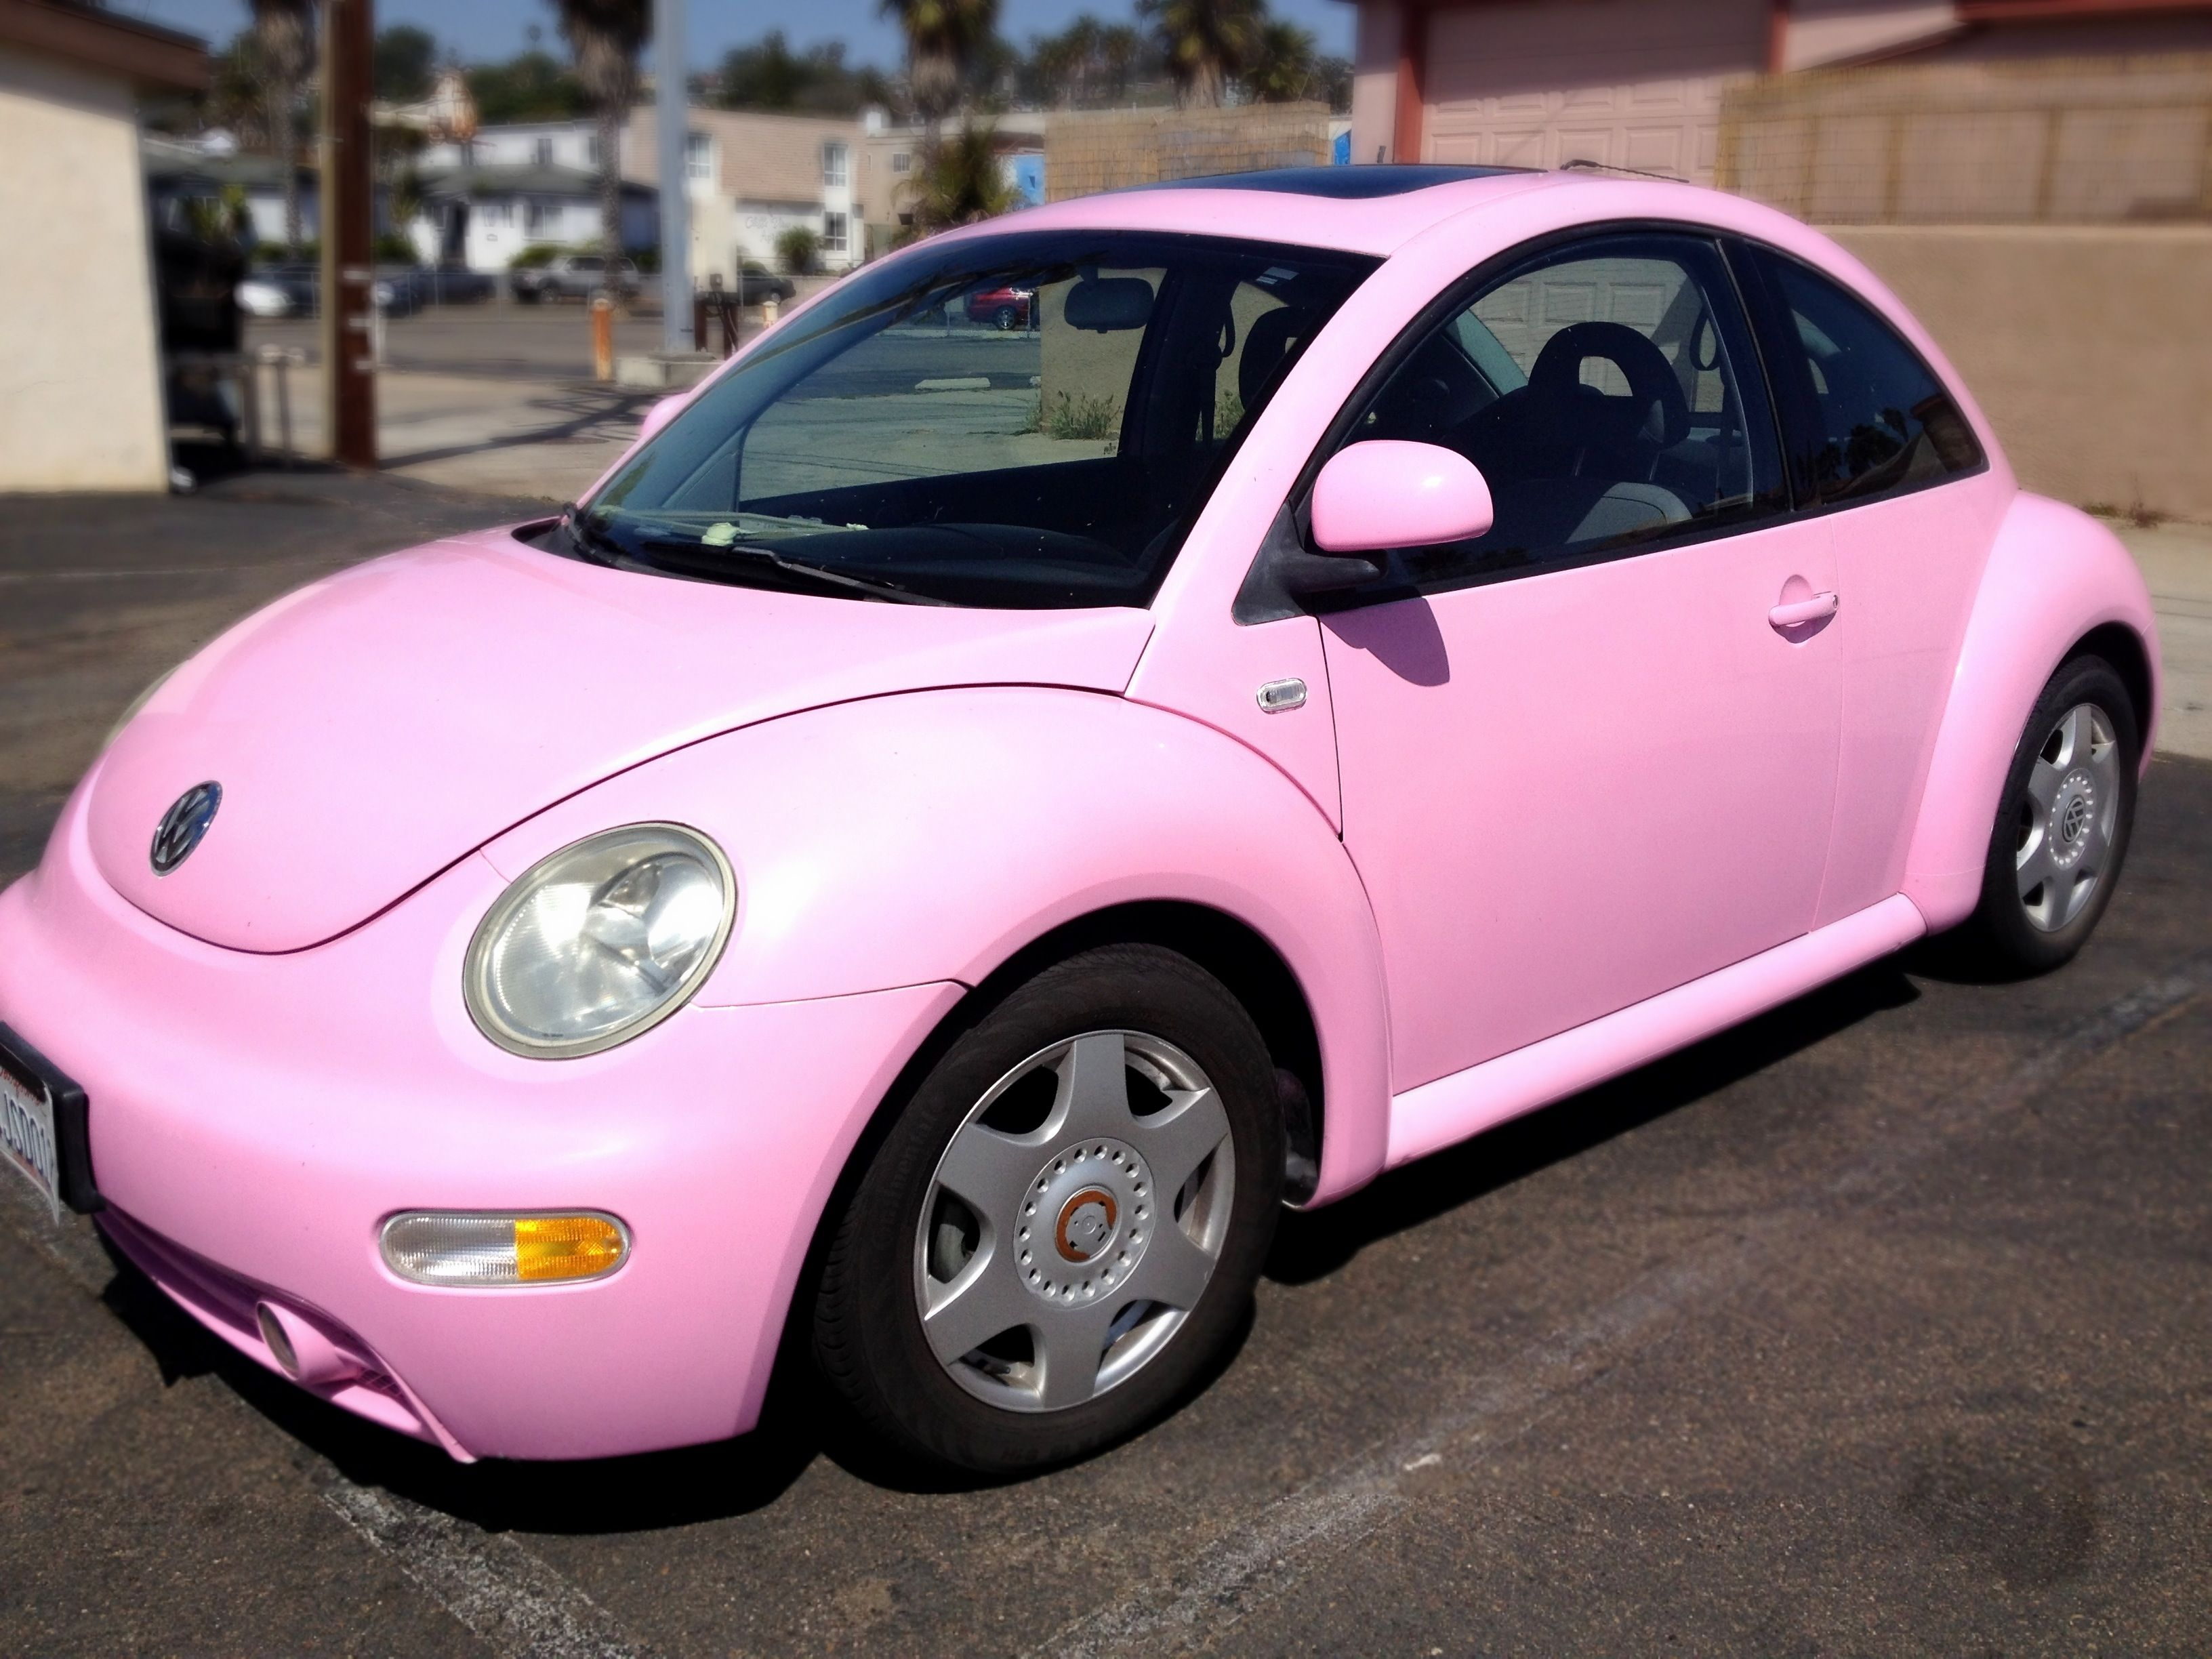 Punch Buggy Volkswagen >> Pink Vw Bug Pink Pinterest Vw Dream Cars And Cars